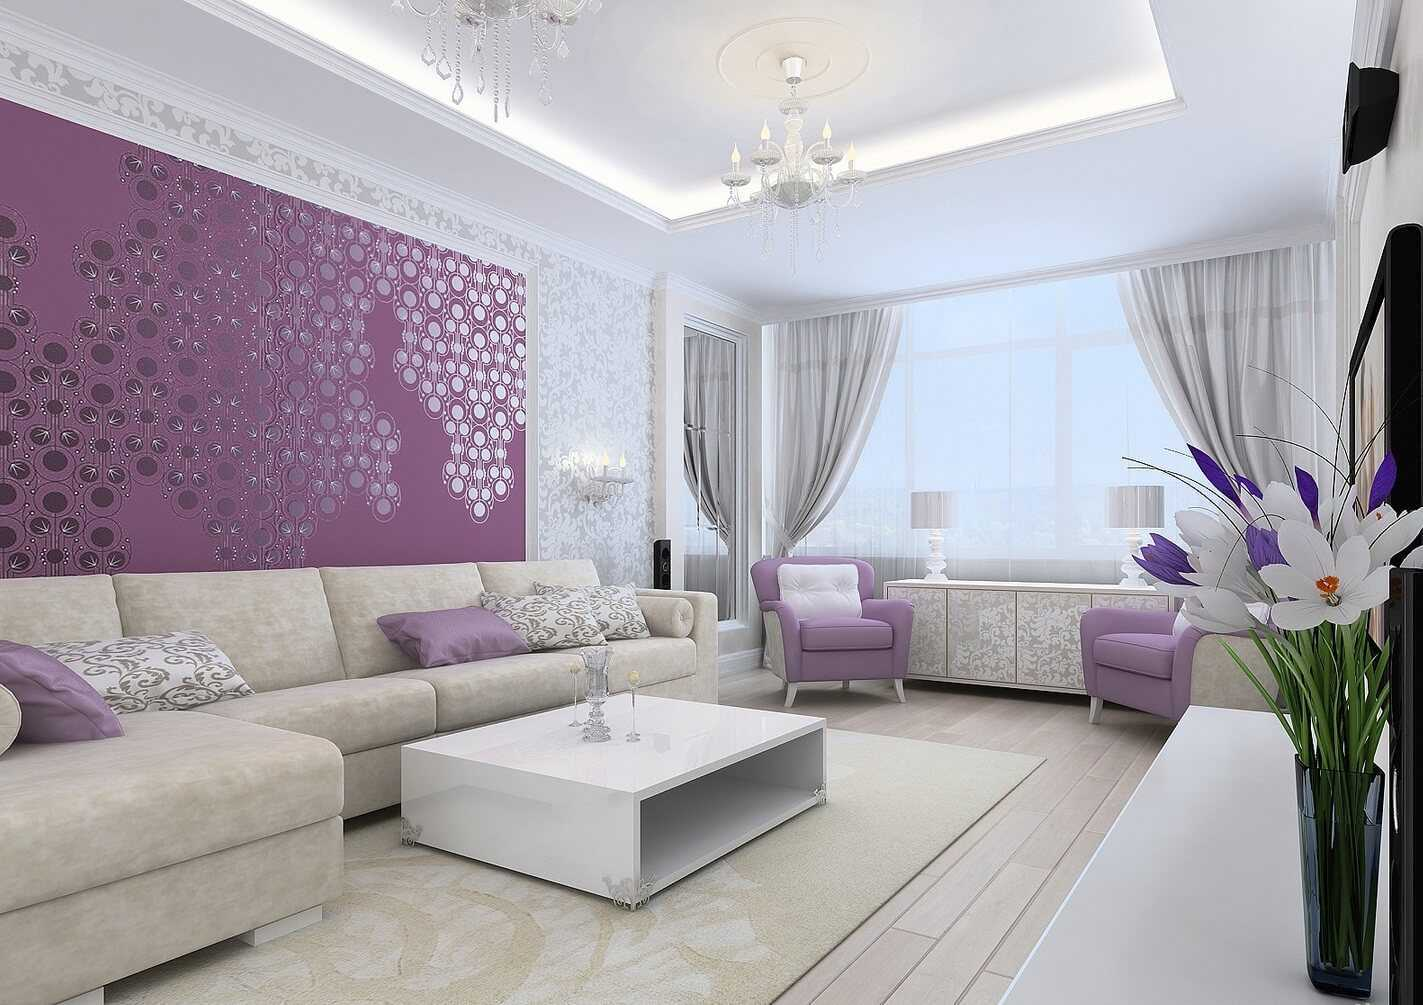 Lilac Colored Living Room: Fresh Design Ideas. Modern designed room with carpet and low coffee table